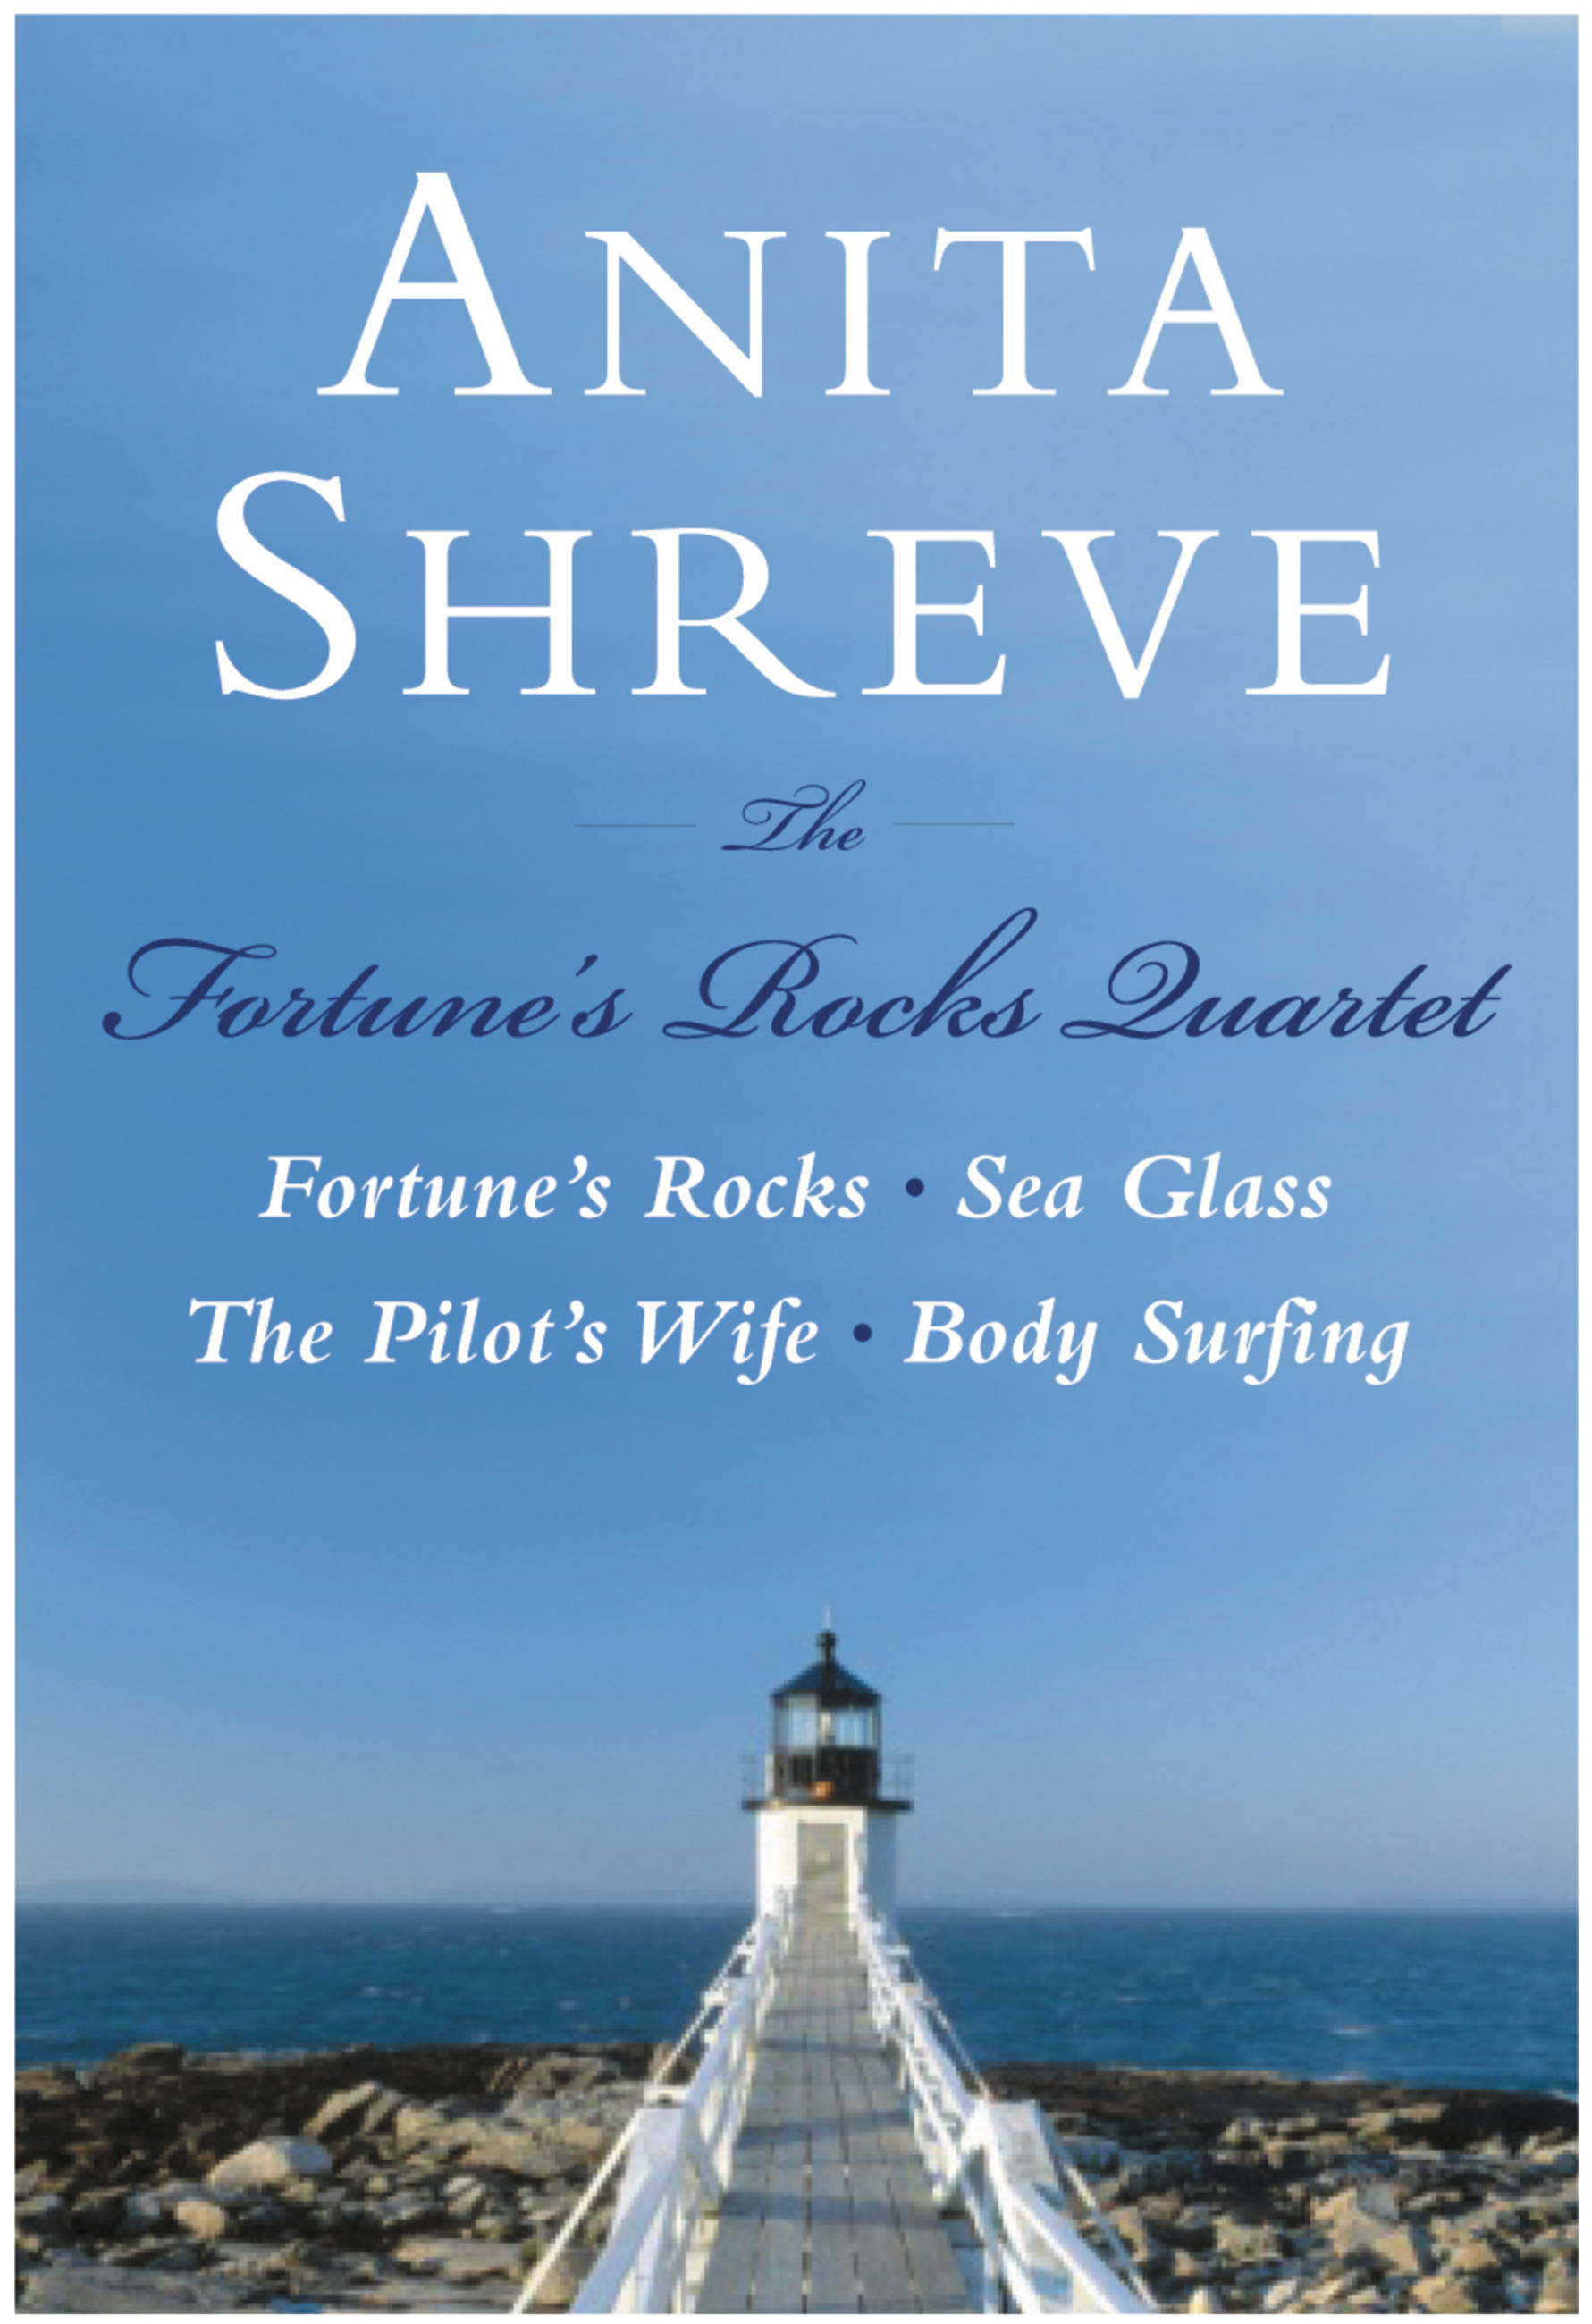 mystery and suspense in the pilots wife by anita shreve See our list of anita shreve audio books the pilot's wife by anita shreve narrated by blair brown mystery, thriller & horror.